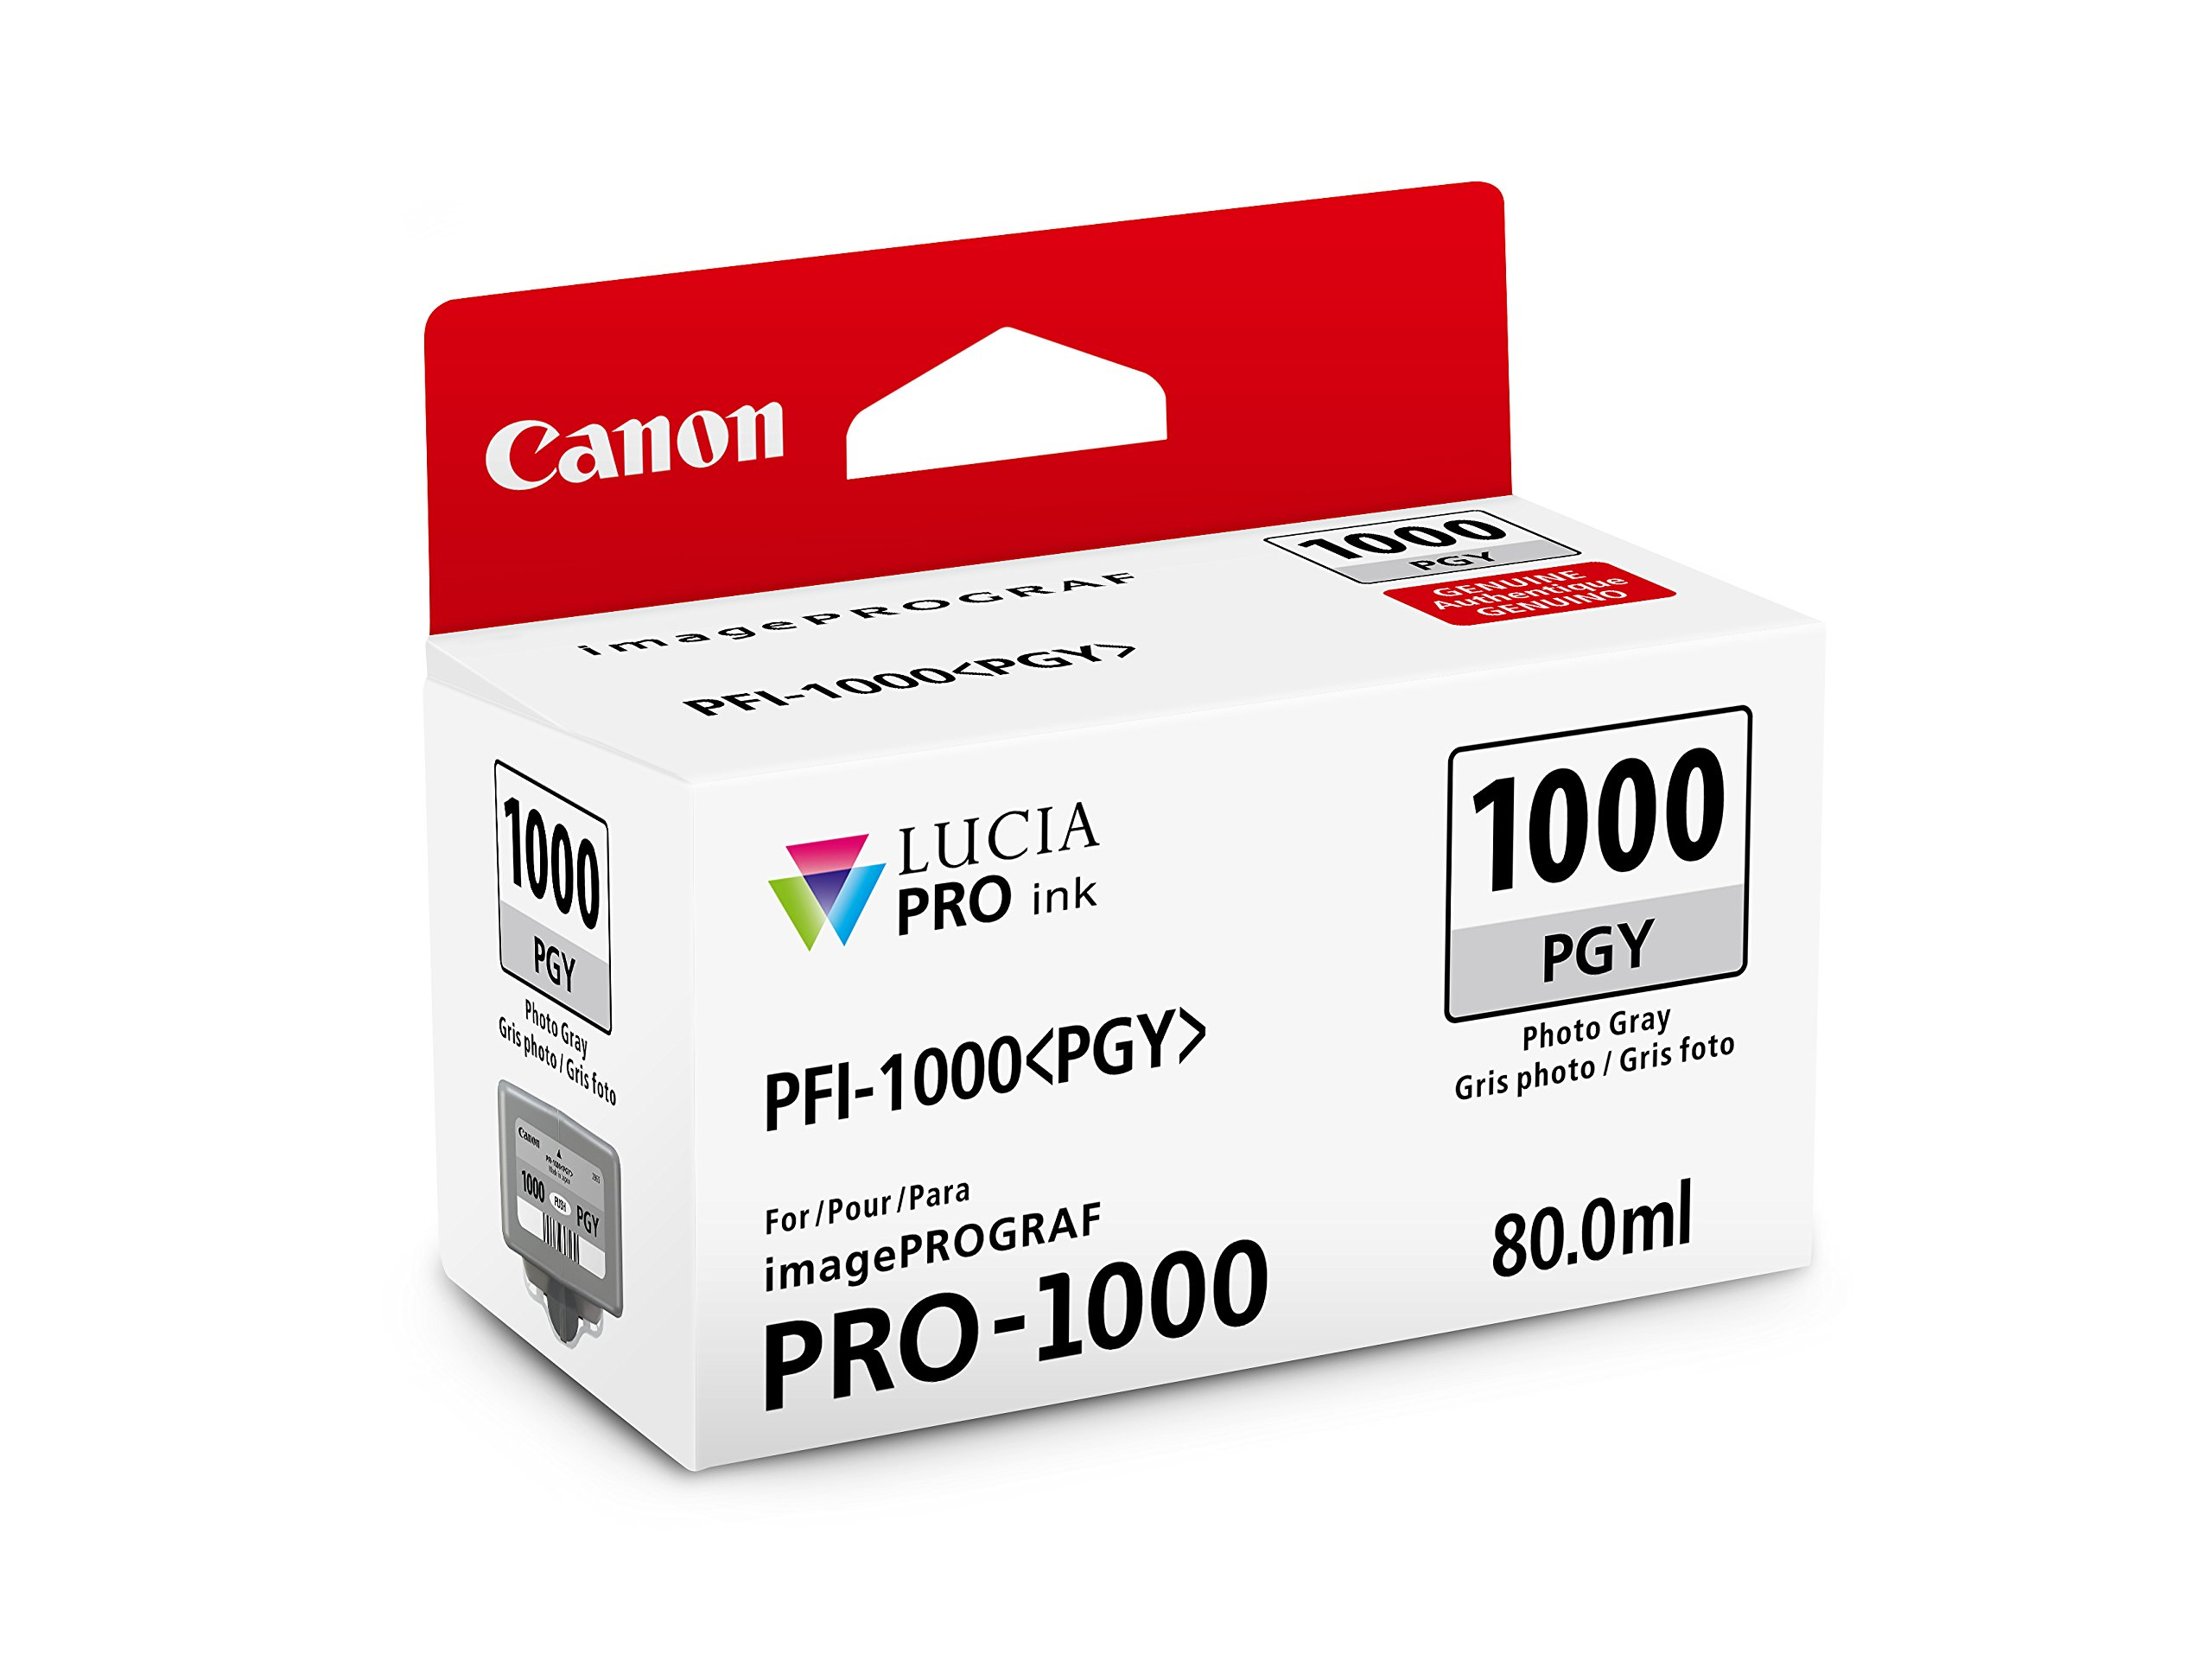 CanonInk LUCIA PRO PFI-1000 Photo Gray Individual Ink Tank